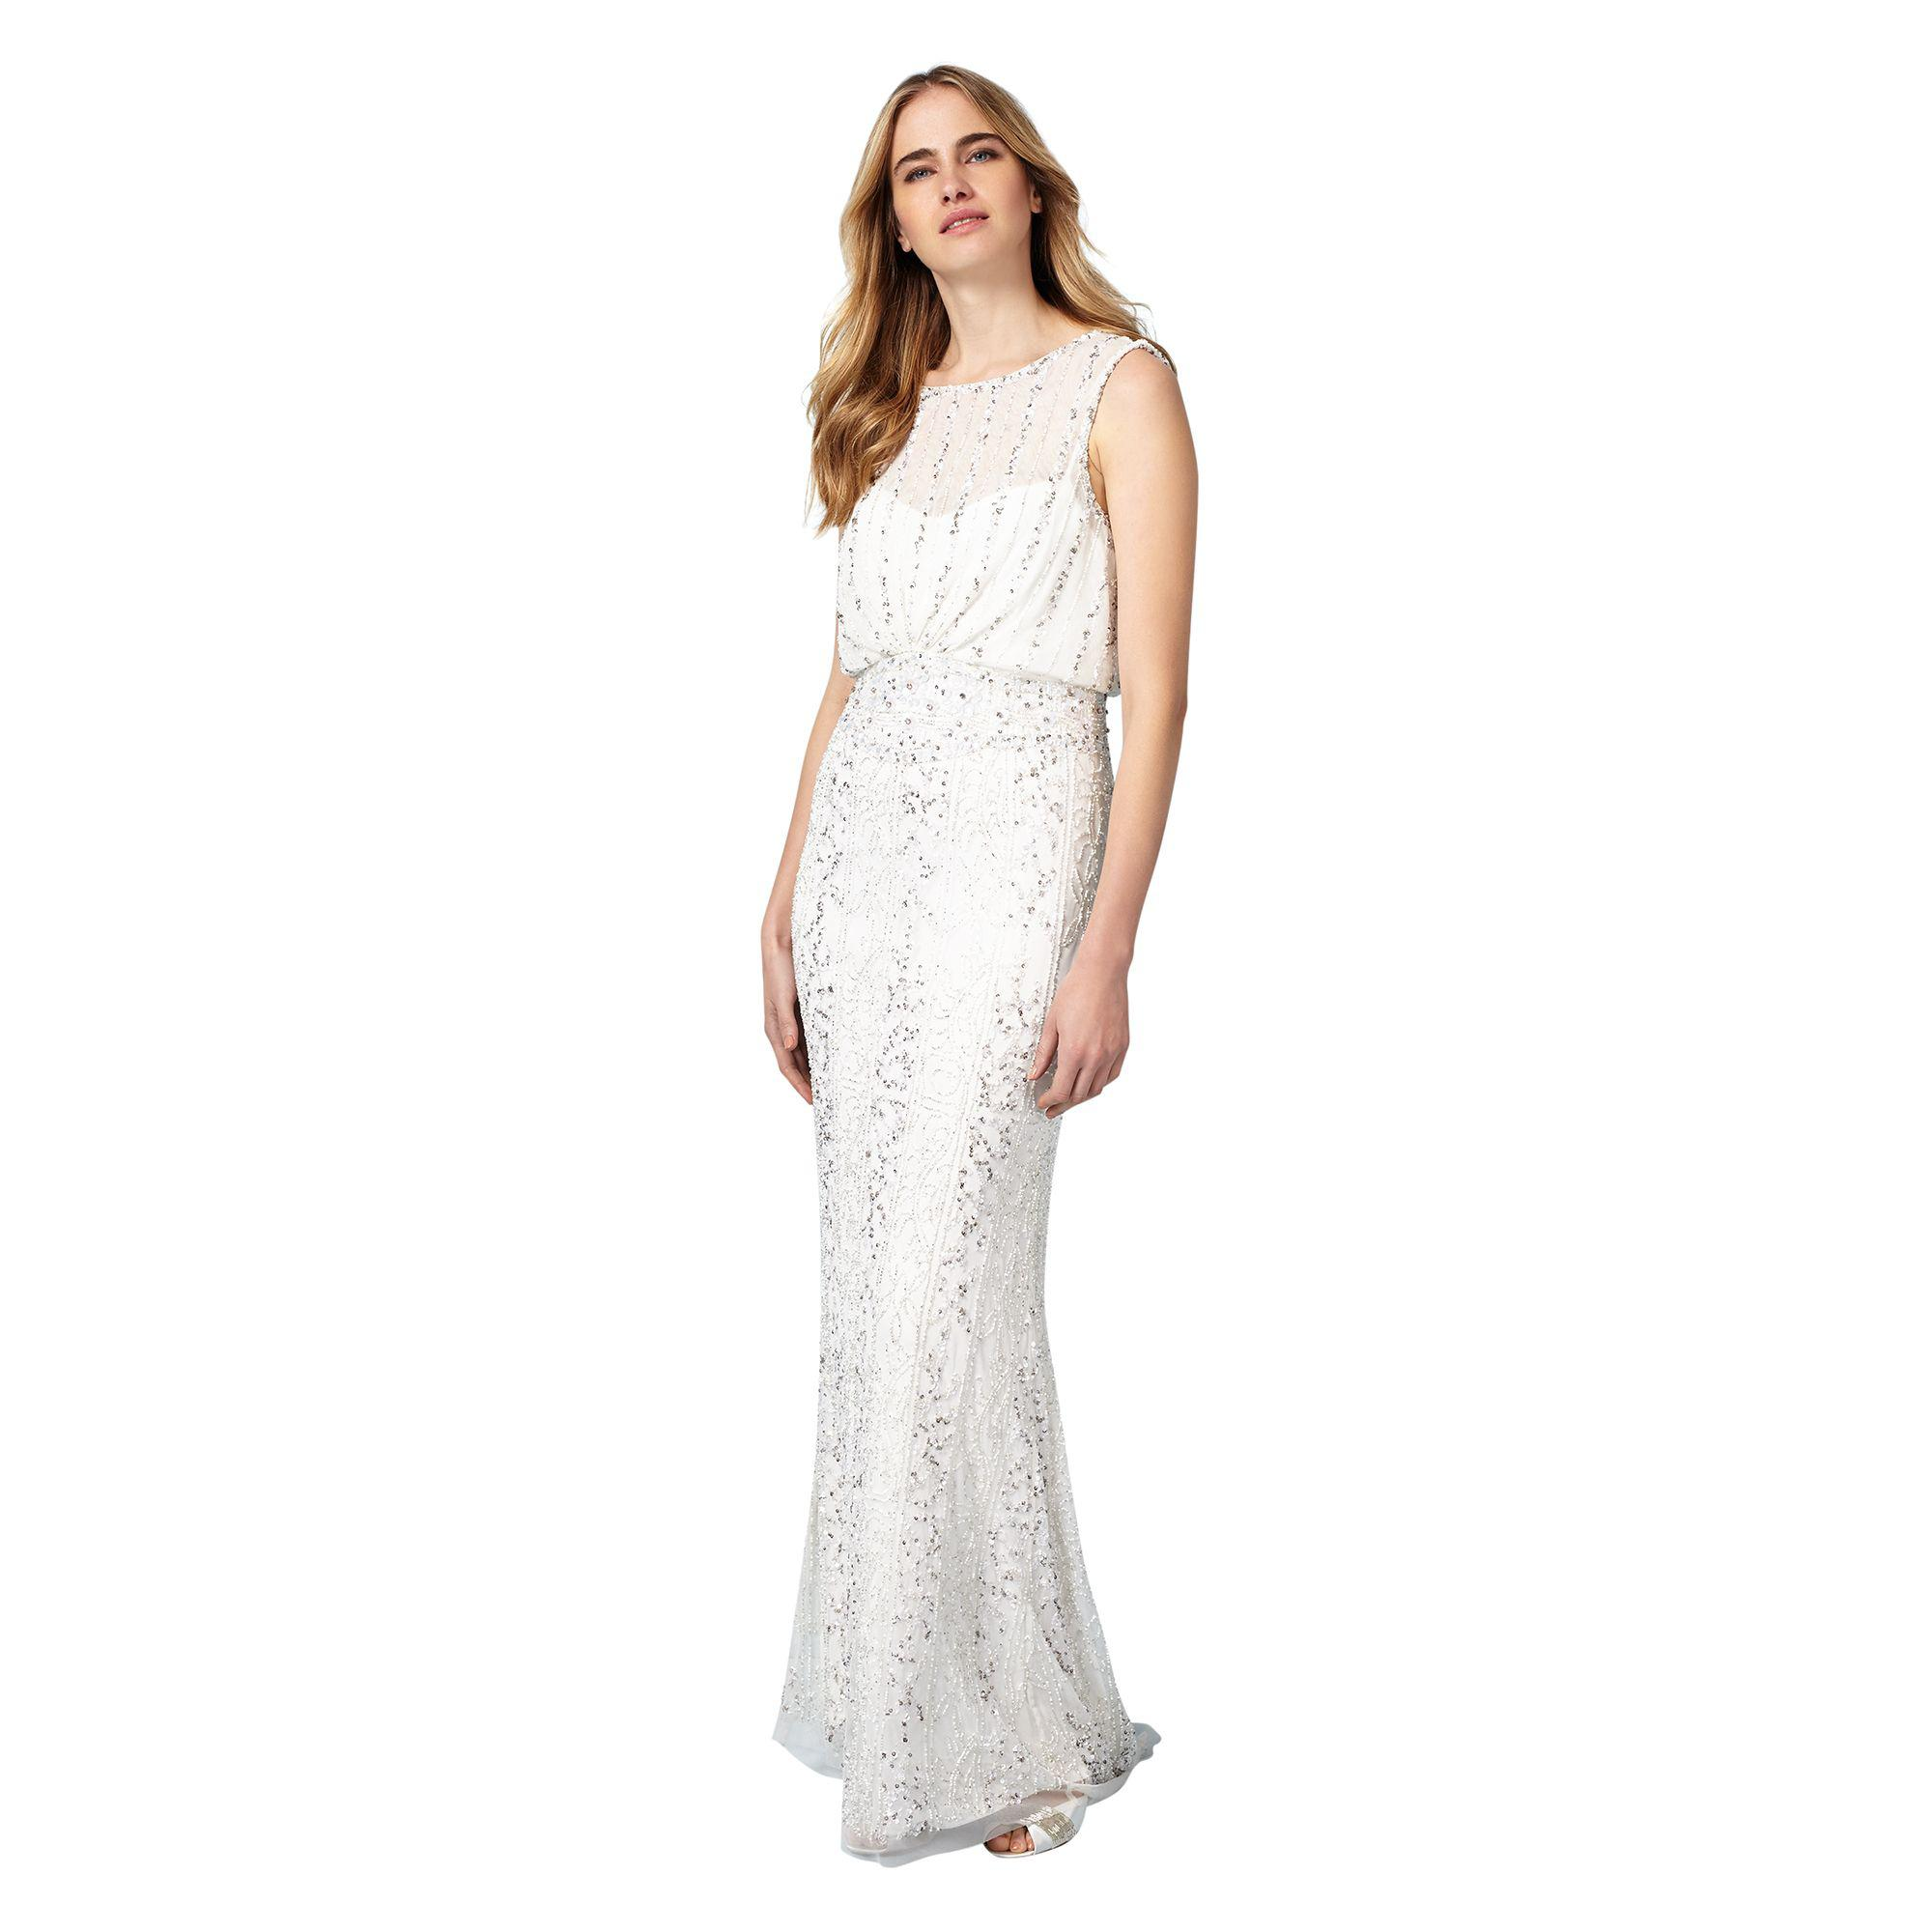 Phase Eight Ivory Hope Wedding Dress in White - Lyst 9ee4e3daf